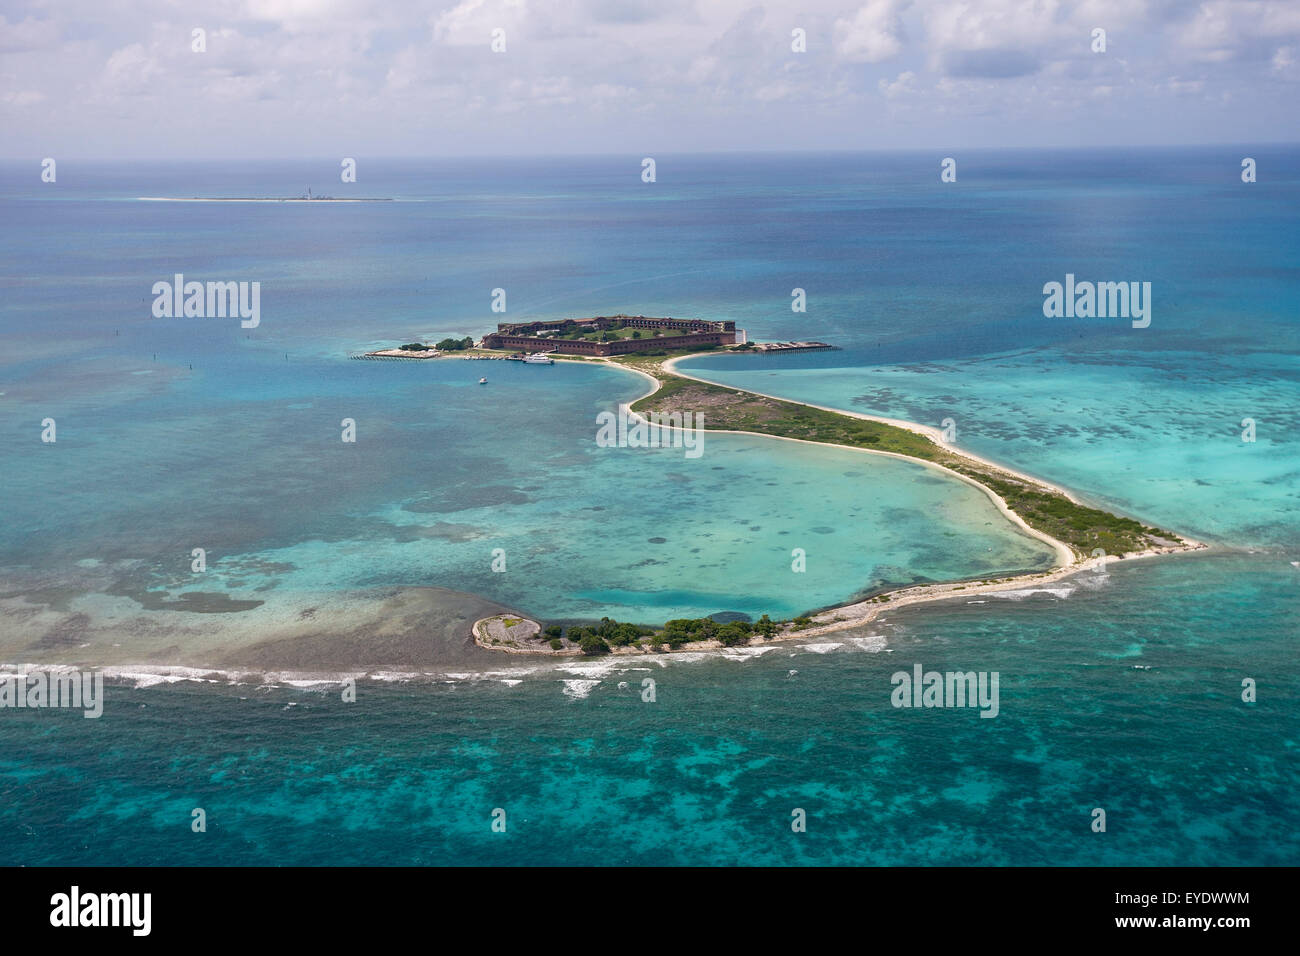 Aerial View Of Long Key Bush Key And Fort Jefferson On Garden Key Stock Photo Royalty Free